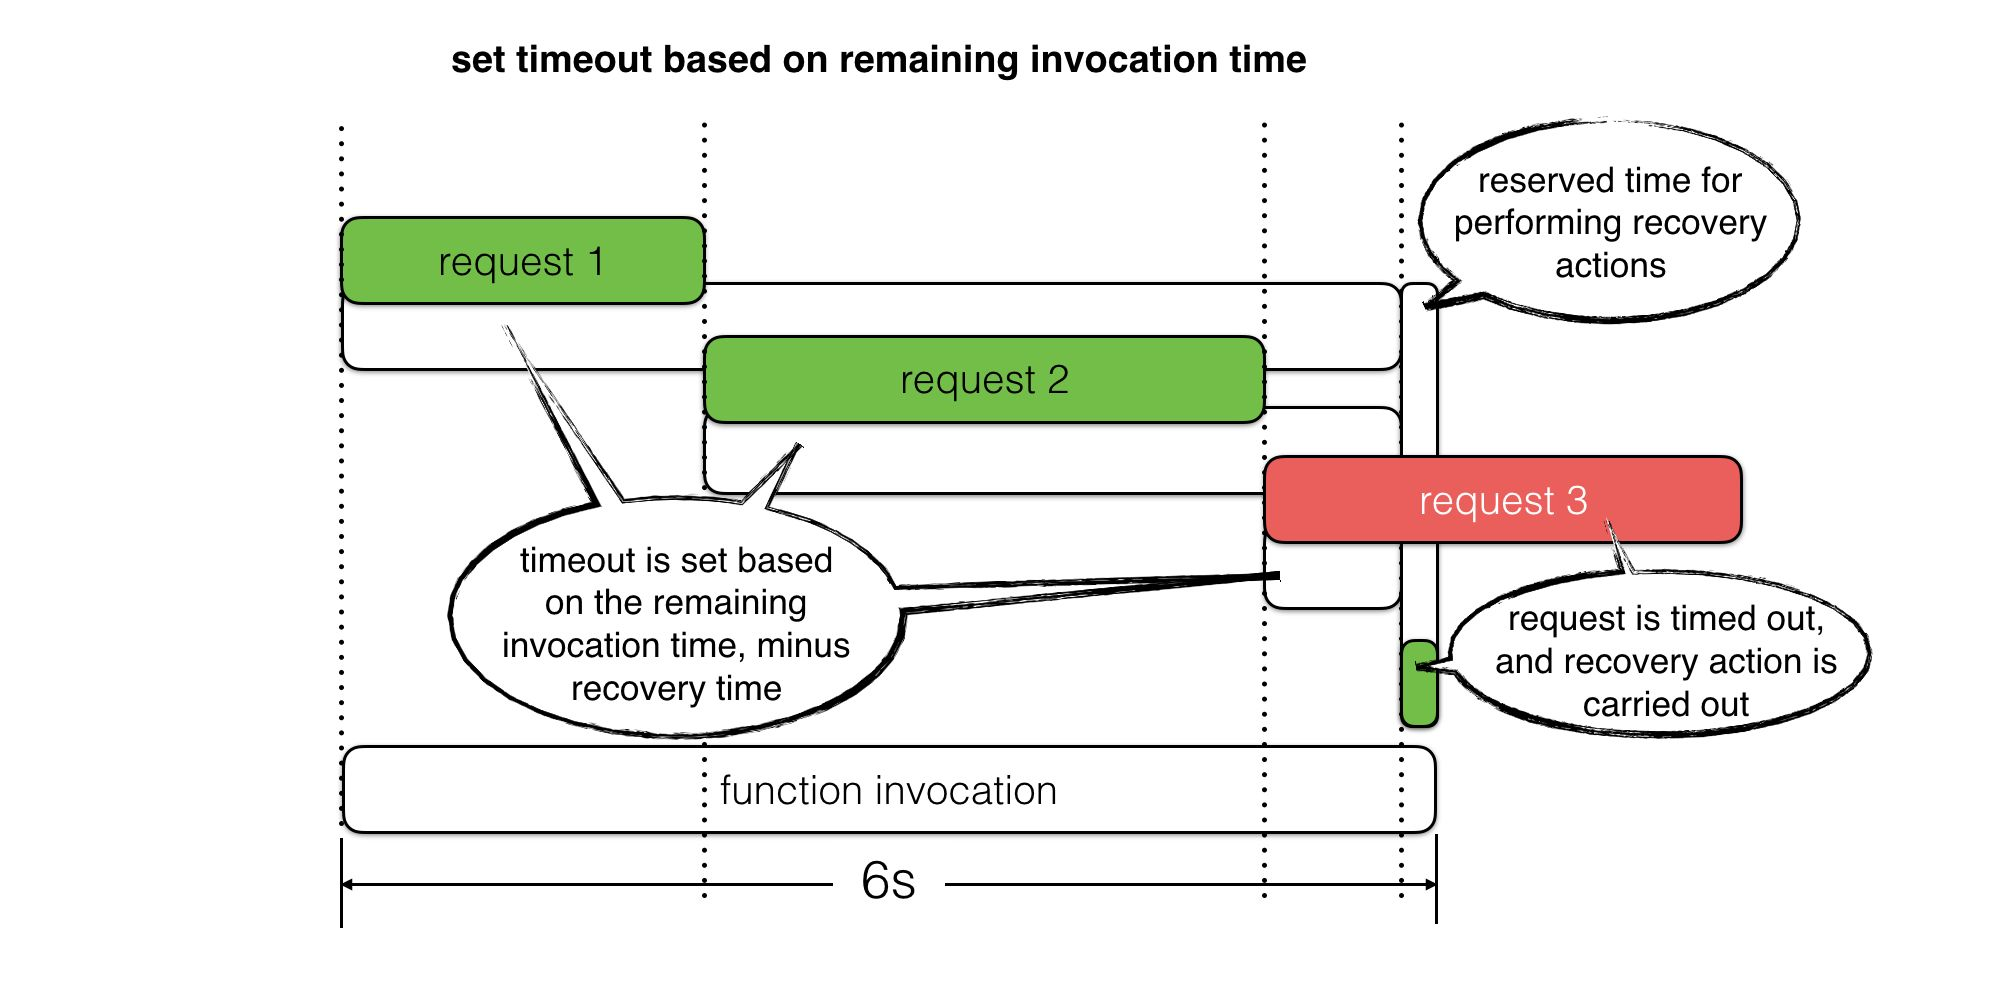 set timeout based on remaining invocation time